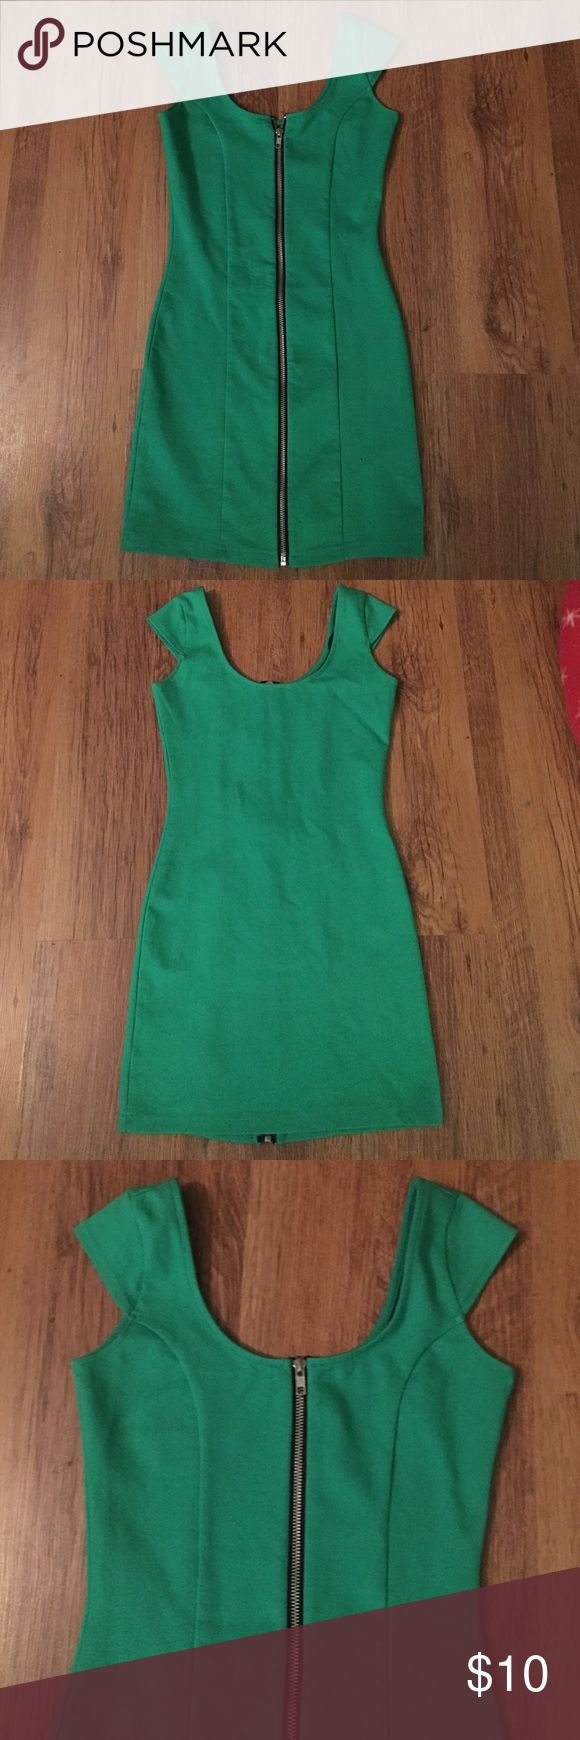 Dress.  Size 4. Kelly green dress.  Zips up the front. Could be worn as a long top with leggings.  Adorable. Size 4. Dresses